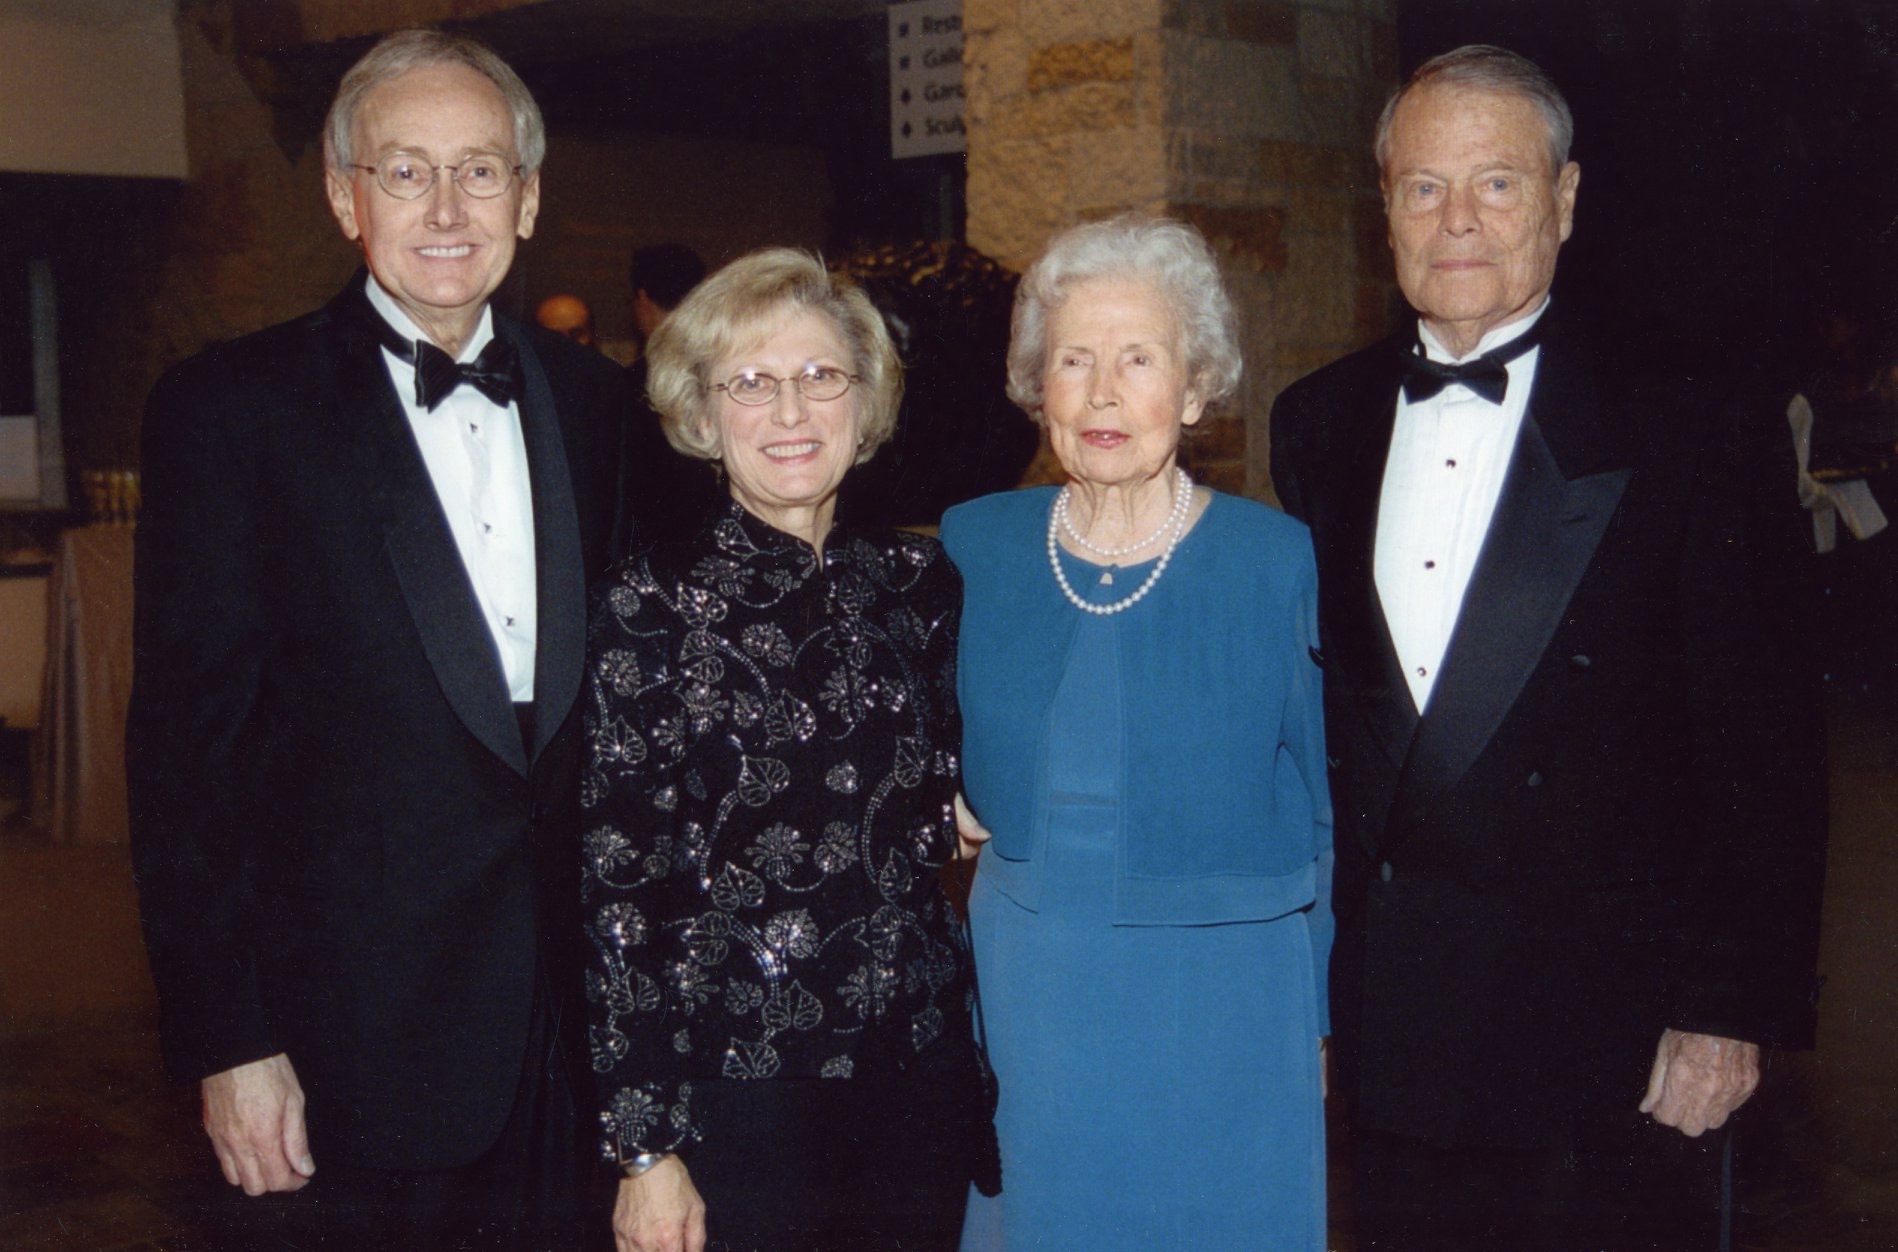 Ralph and Grace Hauenstein with friends